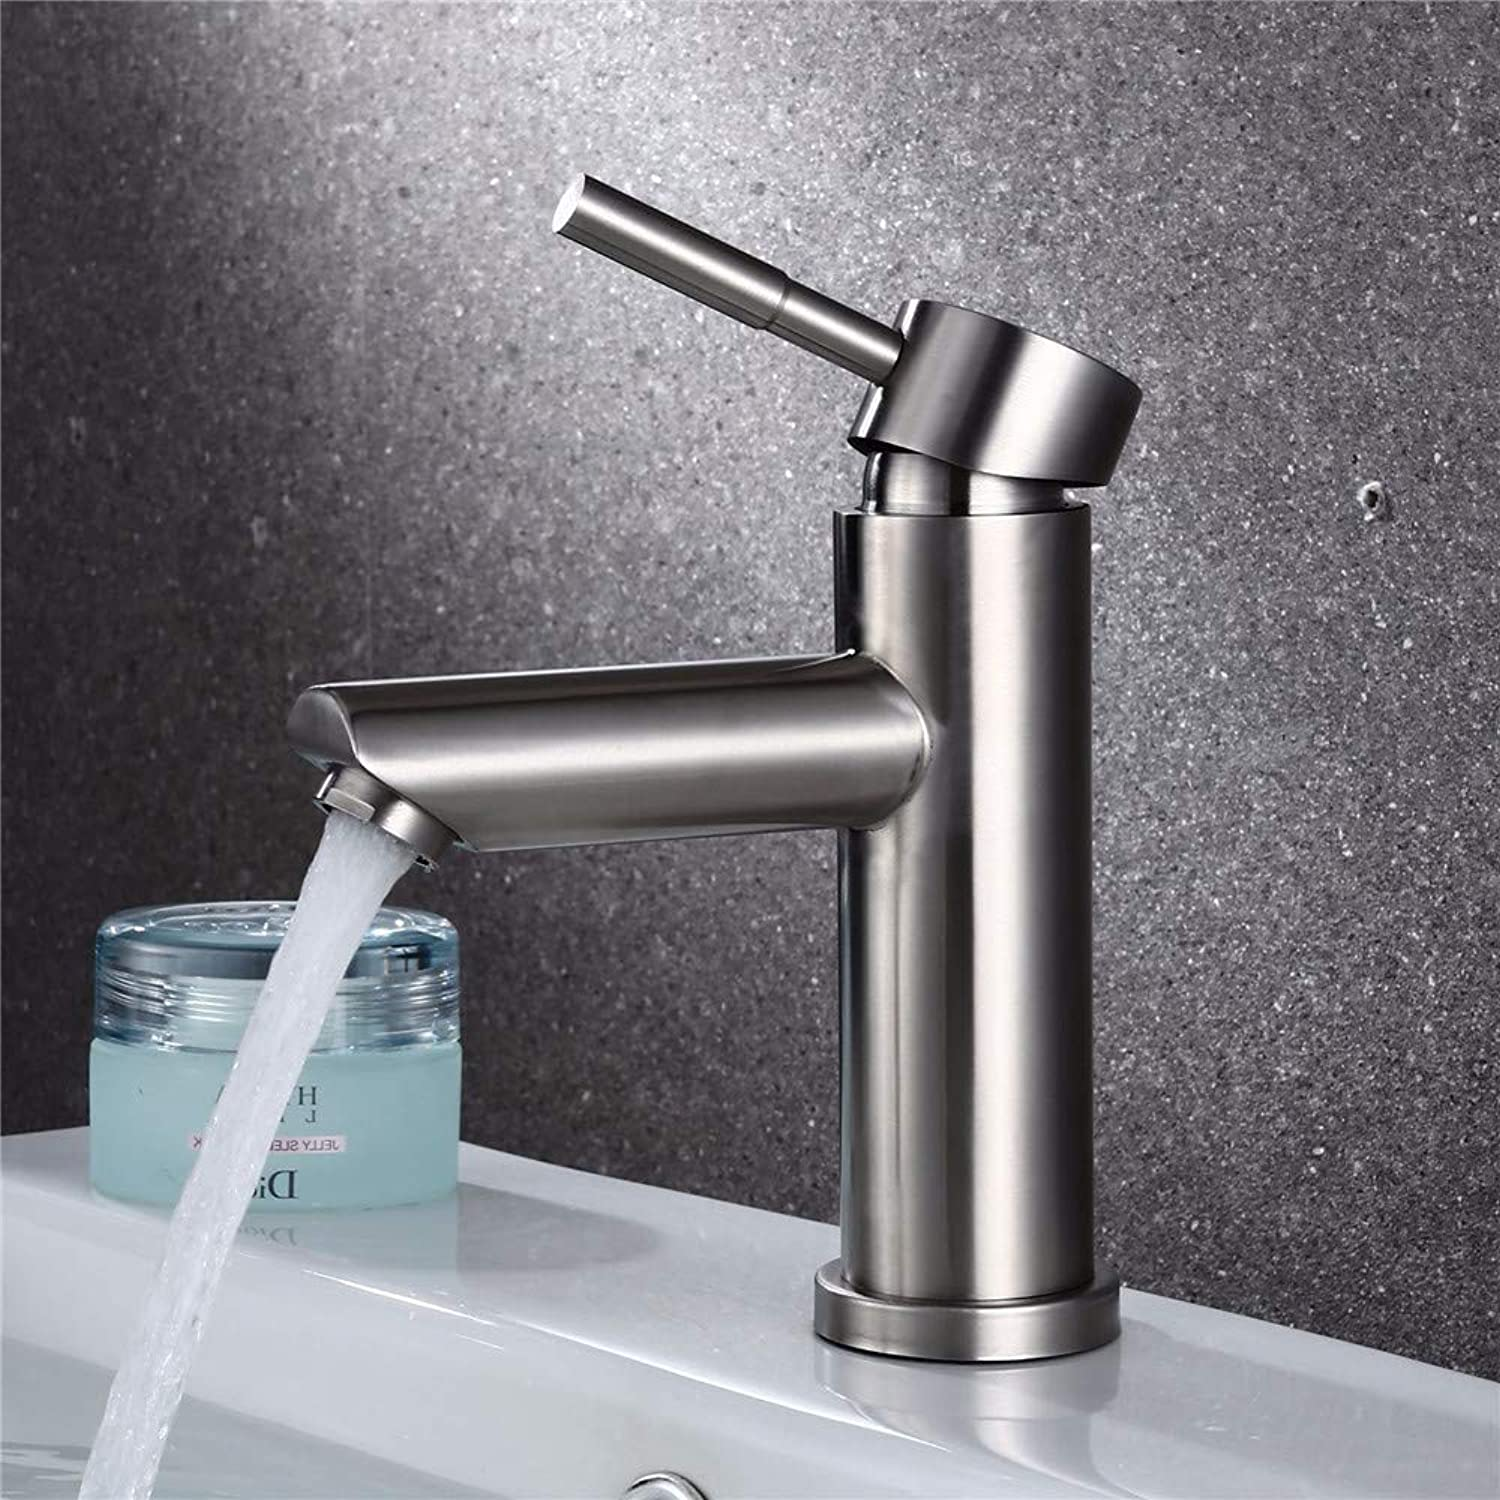 Oudan 304 Stainless Steel Lead-Free Hot and Cold Water Basin Faucet Bathroom Wash Basin Vanity Basin Faucet (color   -, Size   -)